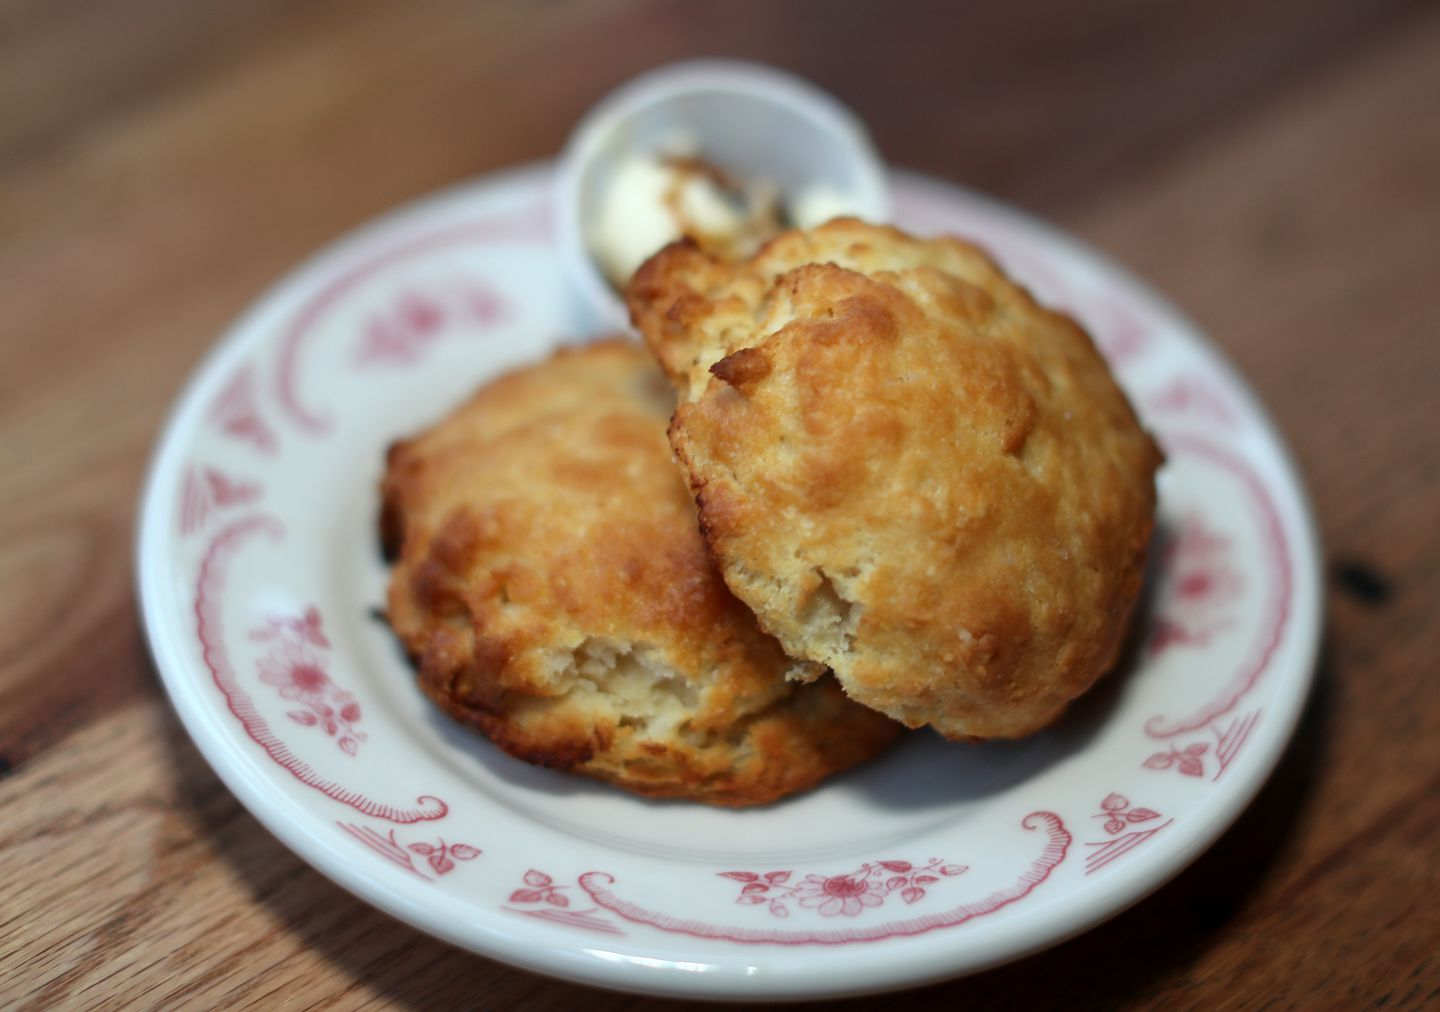 Classic biscuits at Southern Proper.